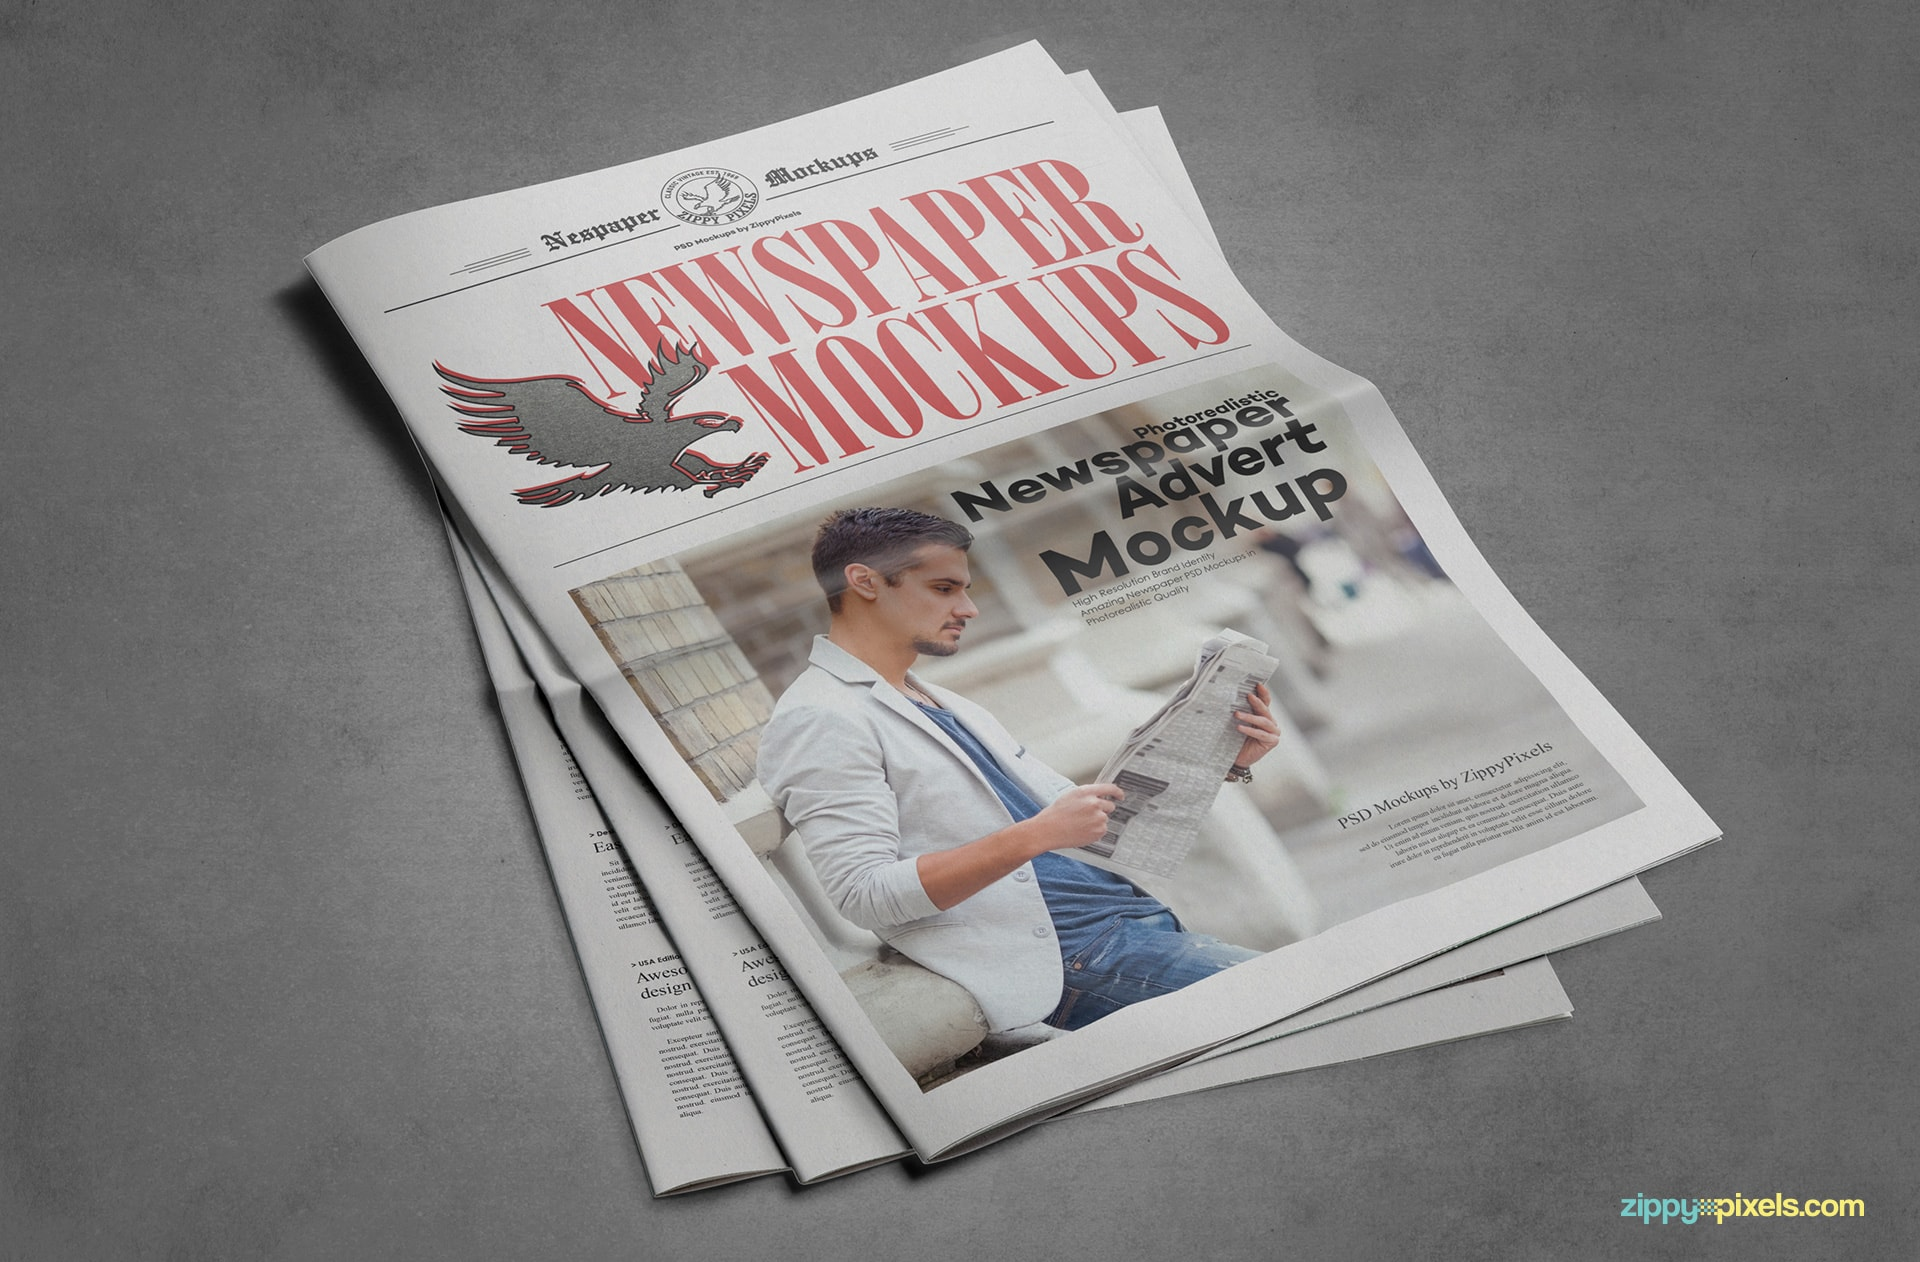 08-realistic-newspaper-mock-ups-824x542